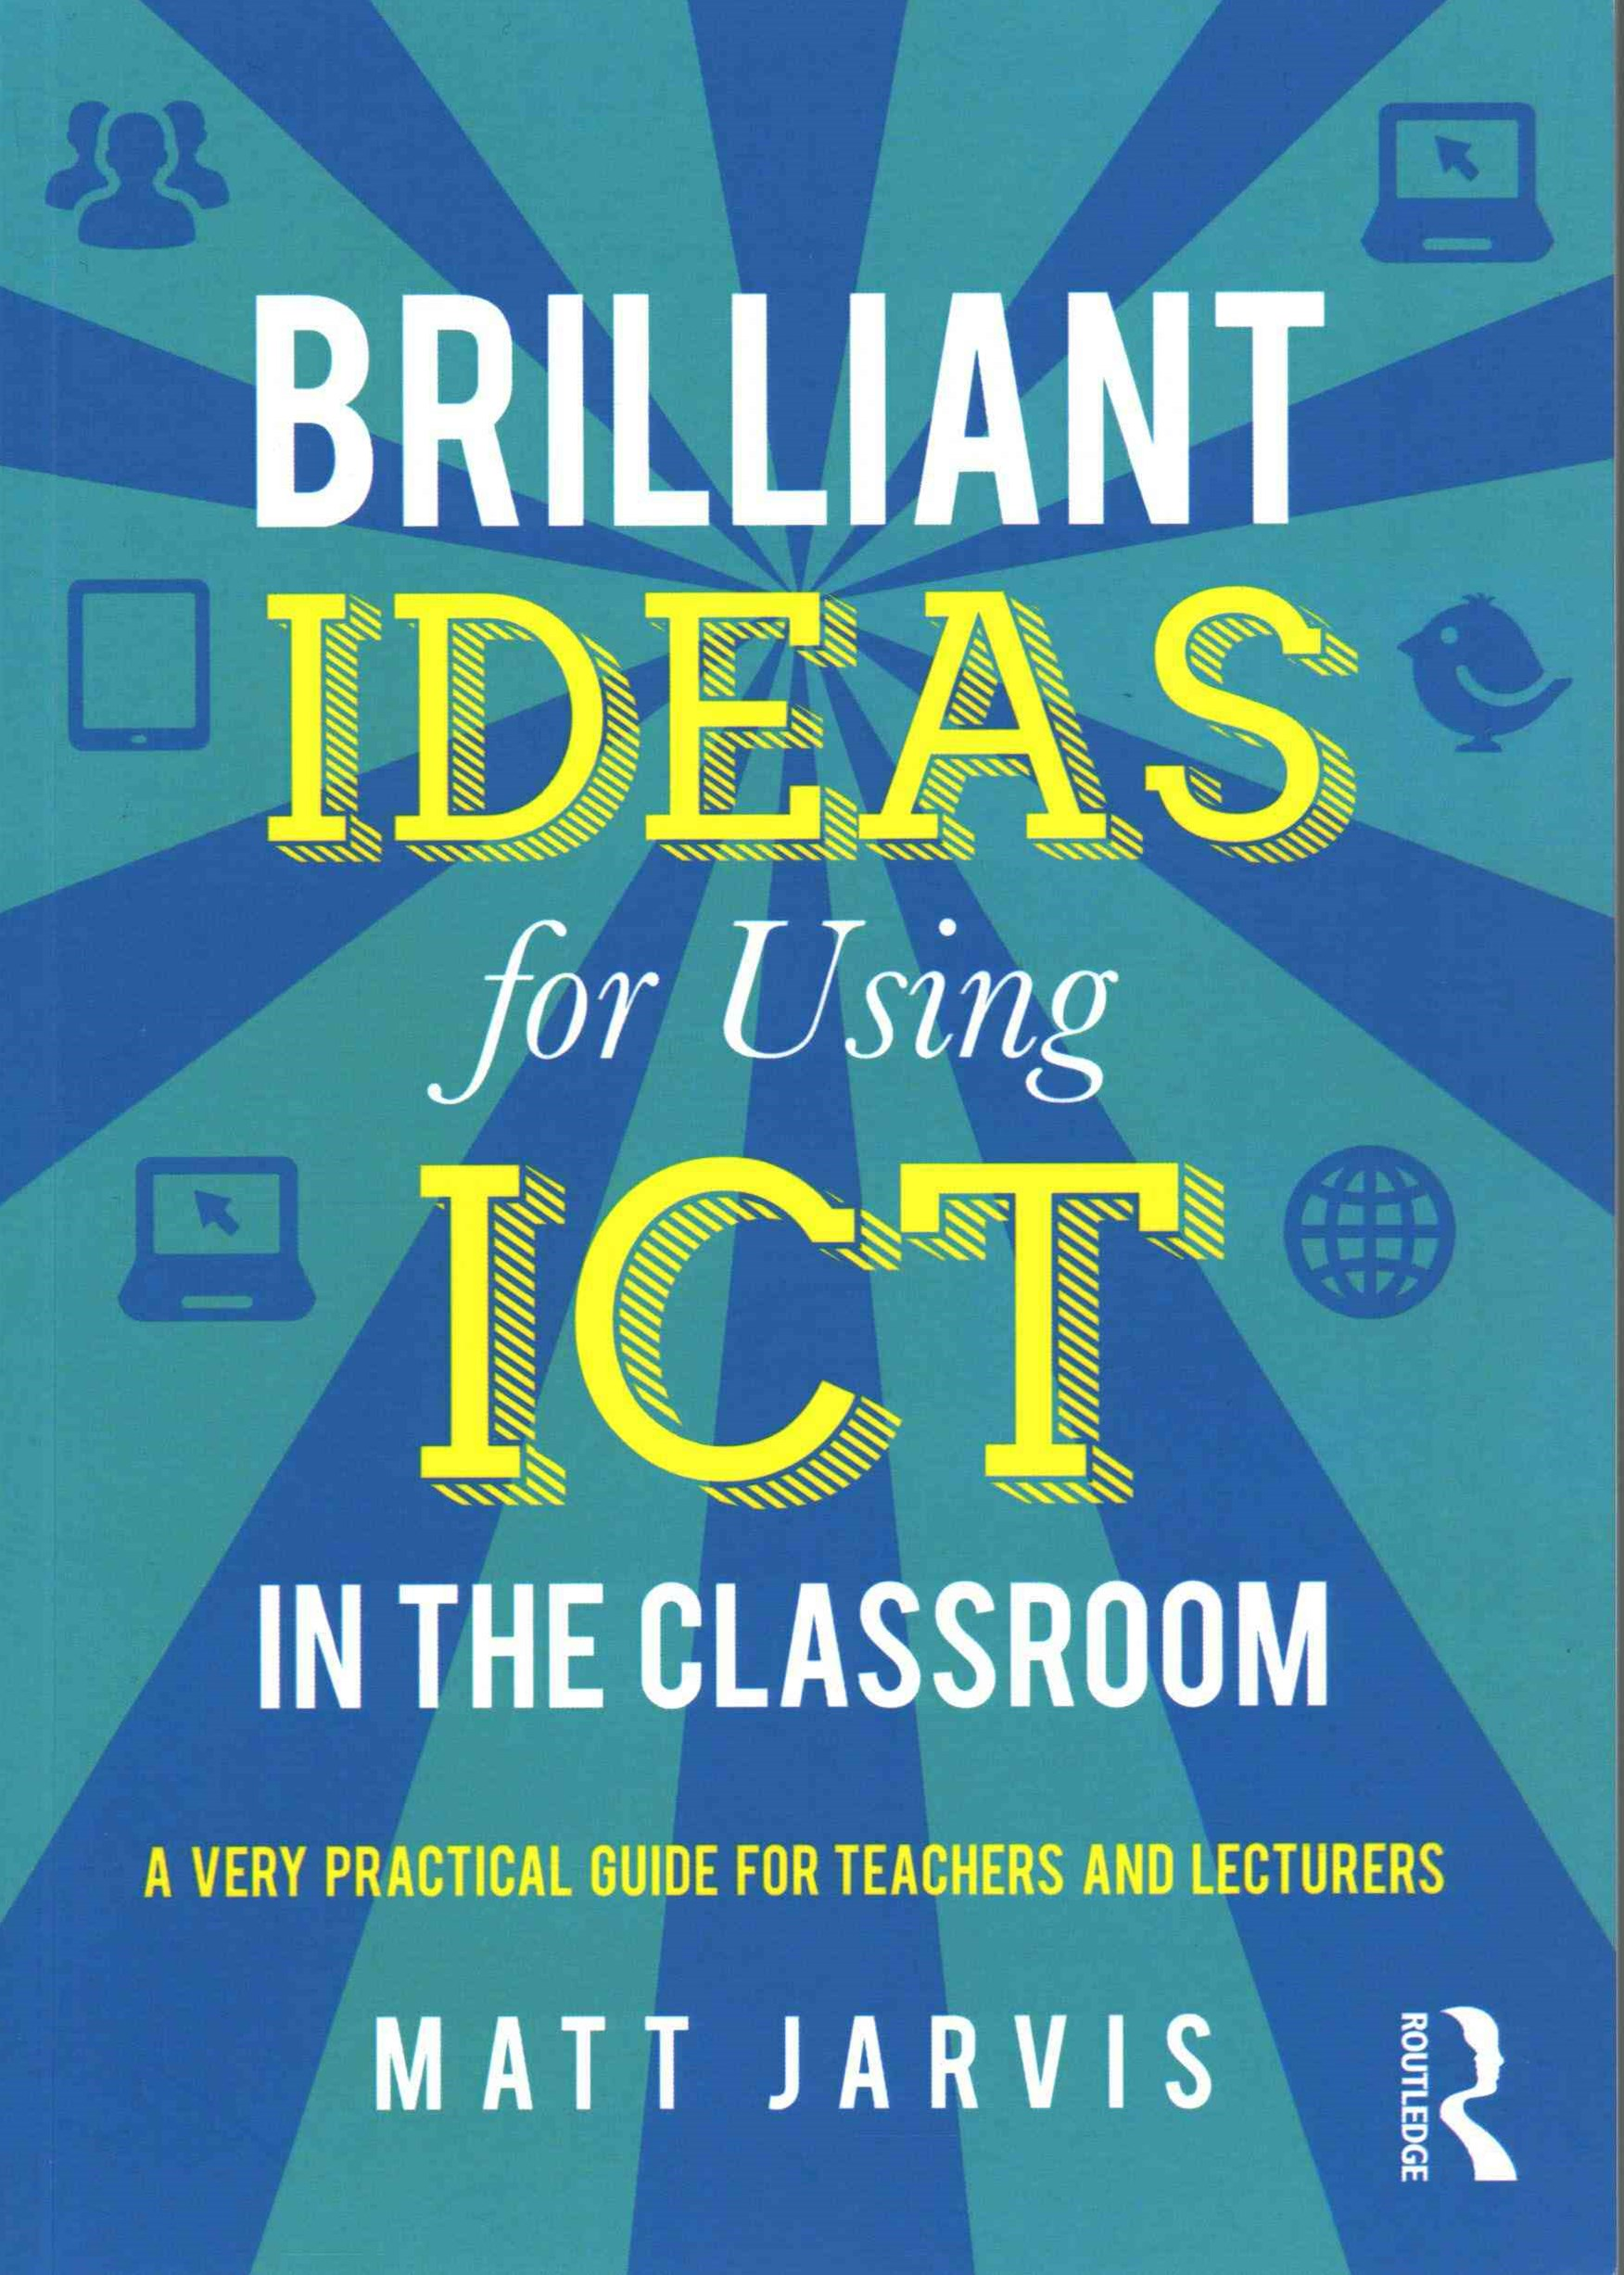 Brilliant Ideas for Using ICT in the Secondary Classroom